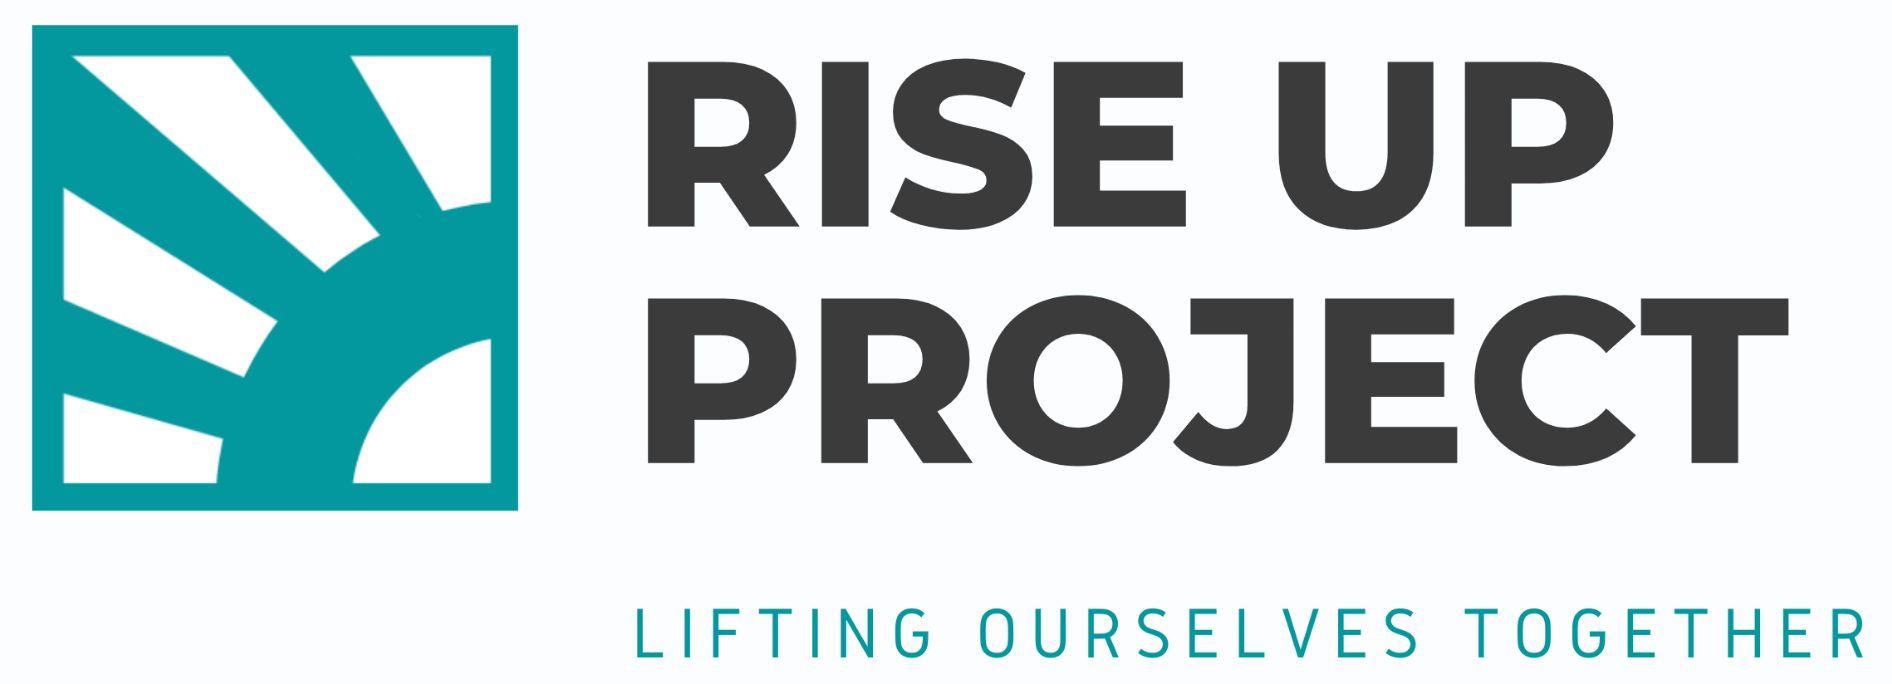 RISE UP PROJECT